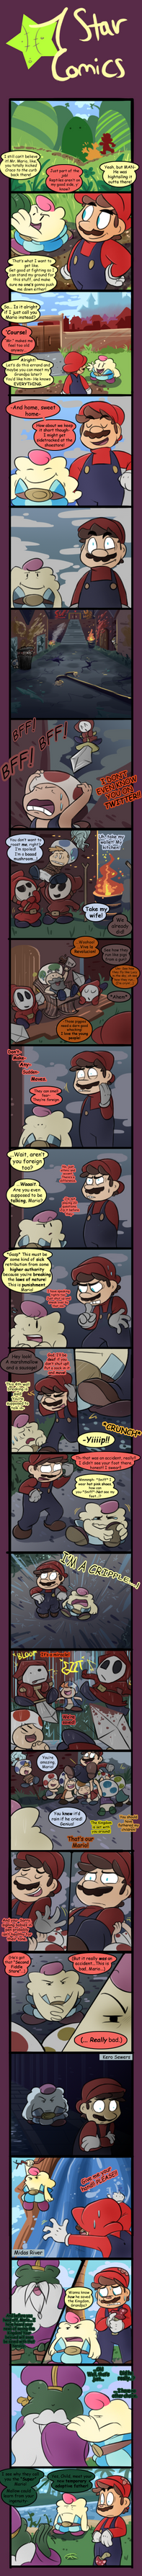 Seven Star Comics 88 by Loopy-Lupe